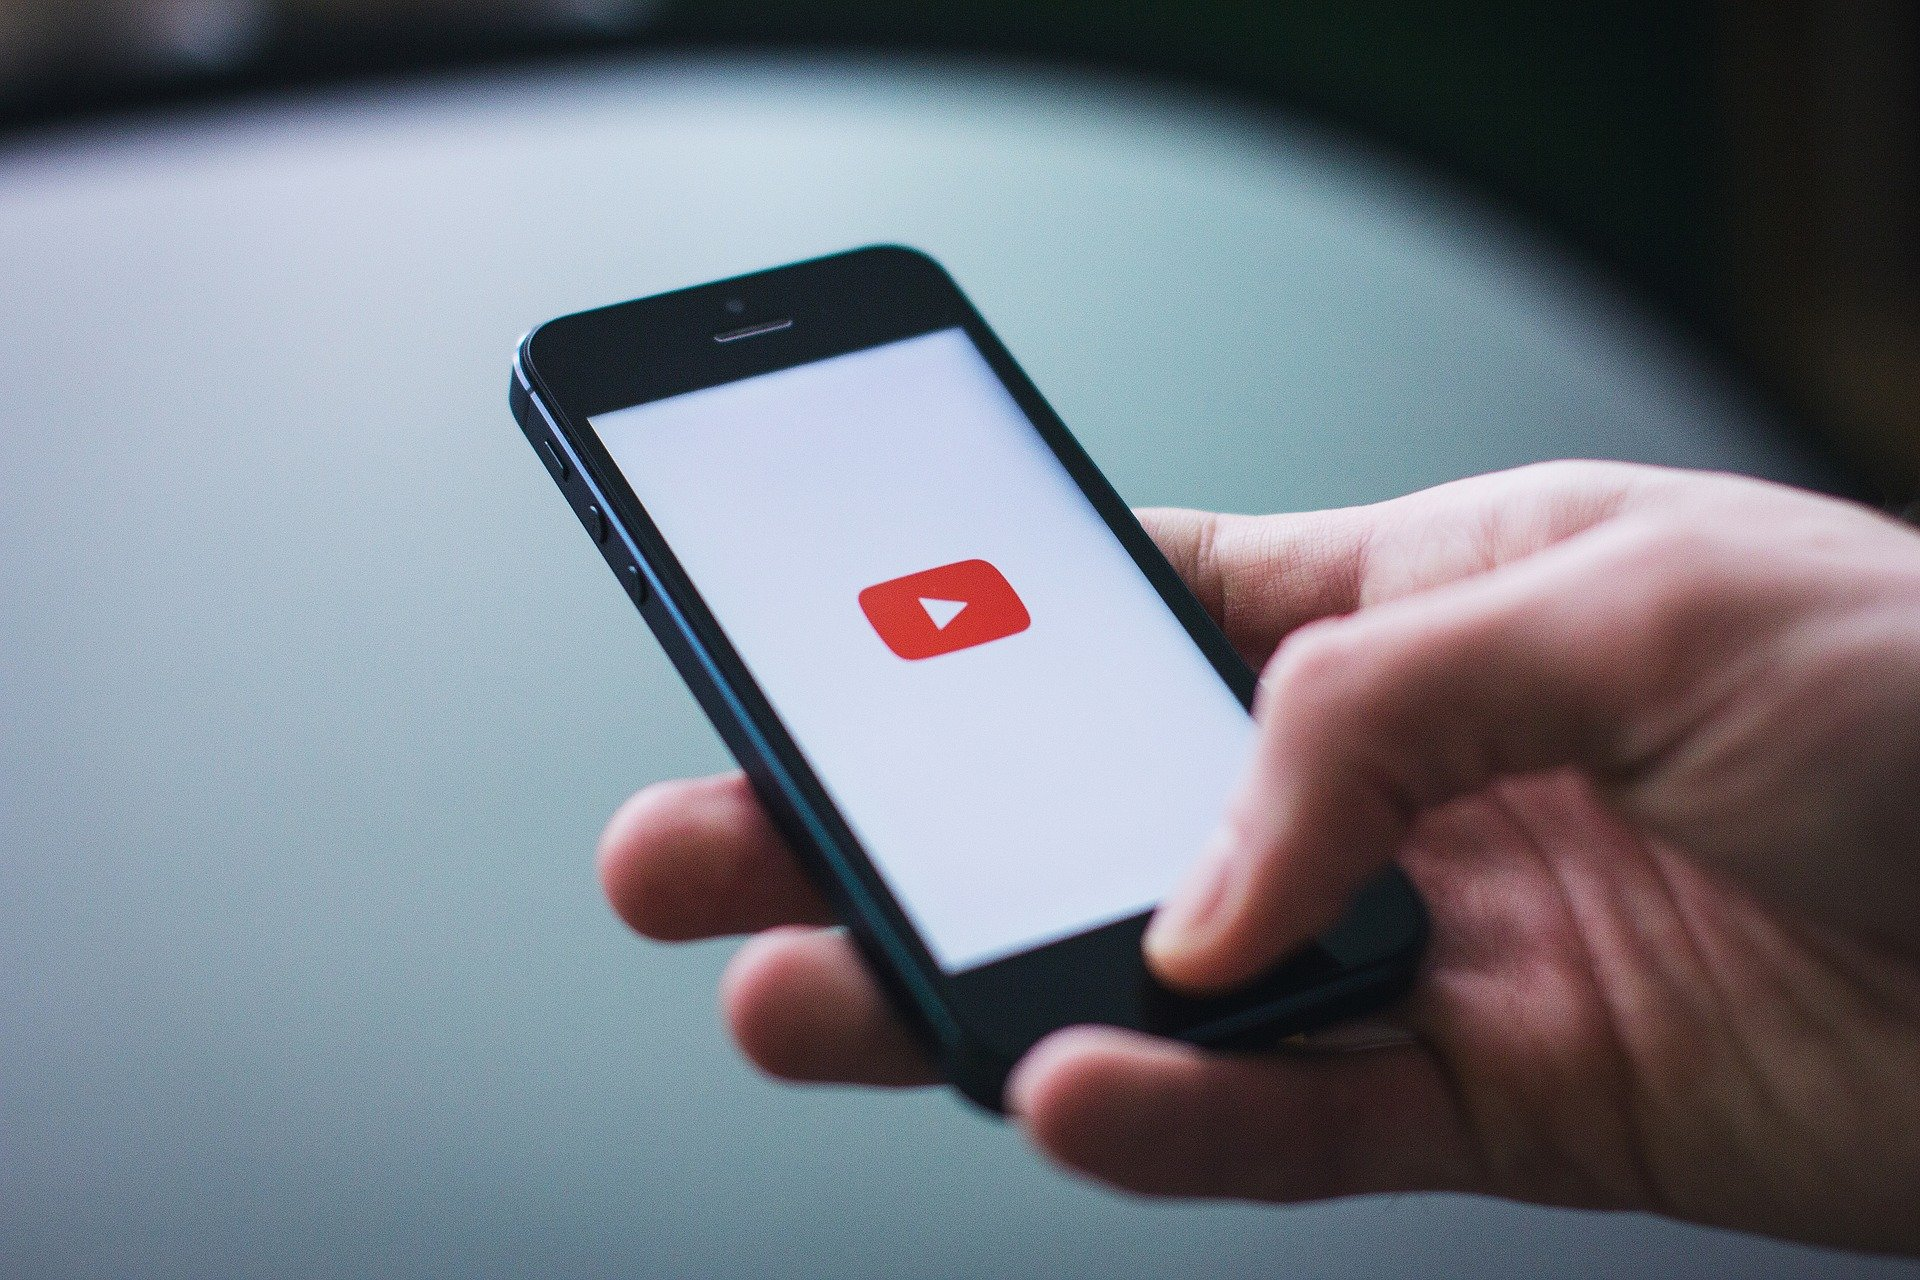 Maximizing on Video: How to Get More Eyes On Your Video Content